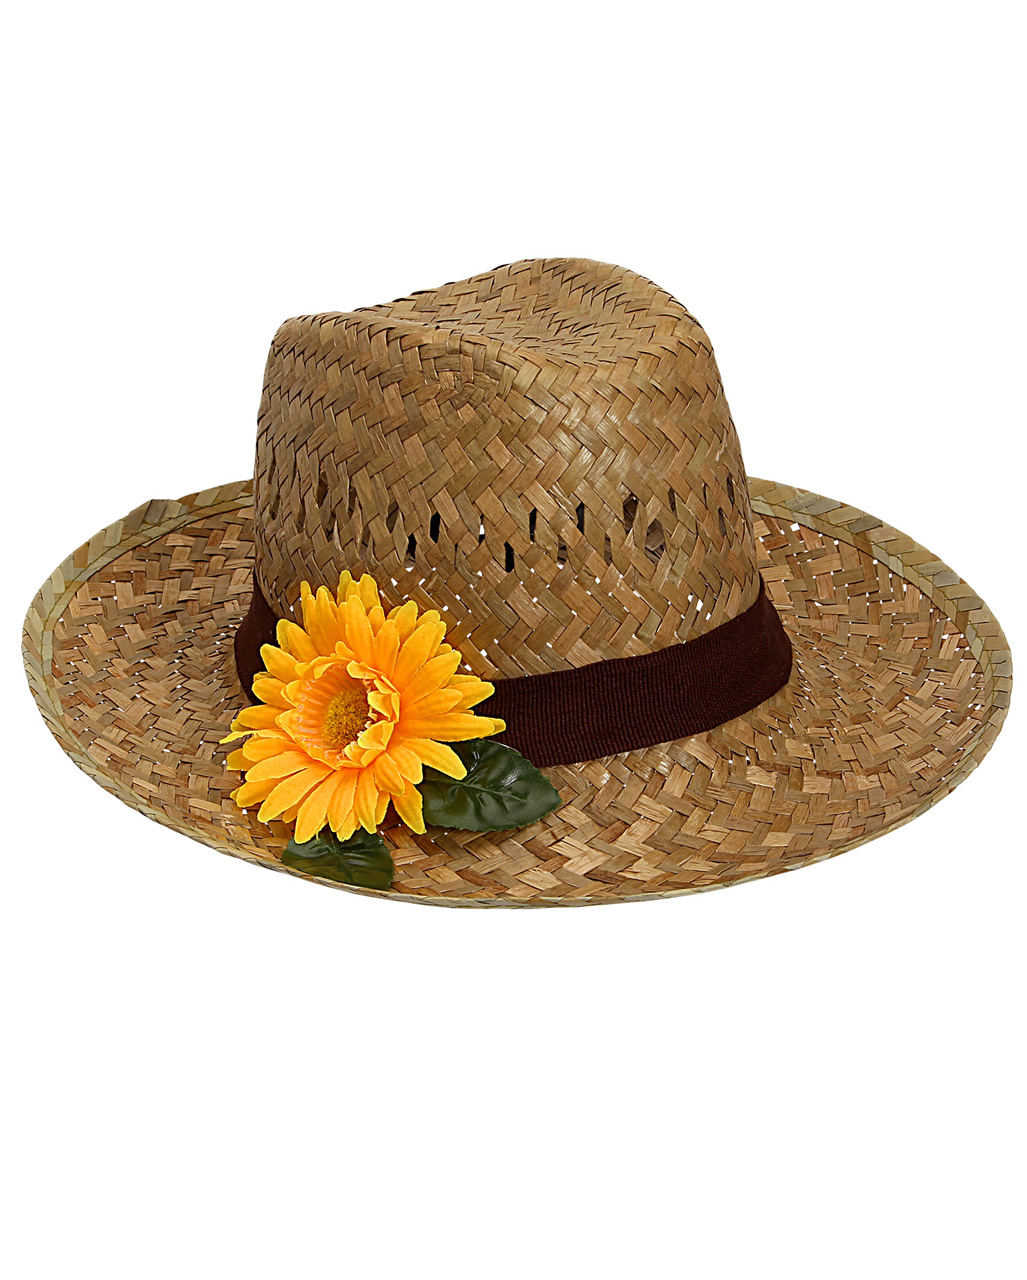 8cff59594c4 Farmers Hat With Sunflower